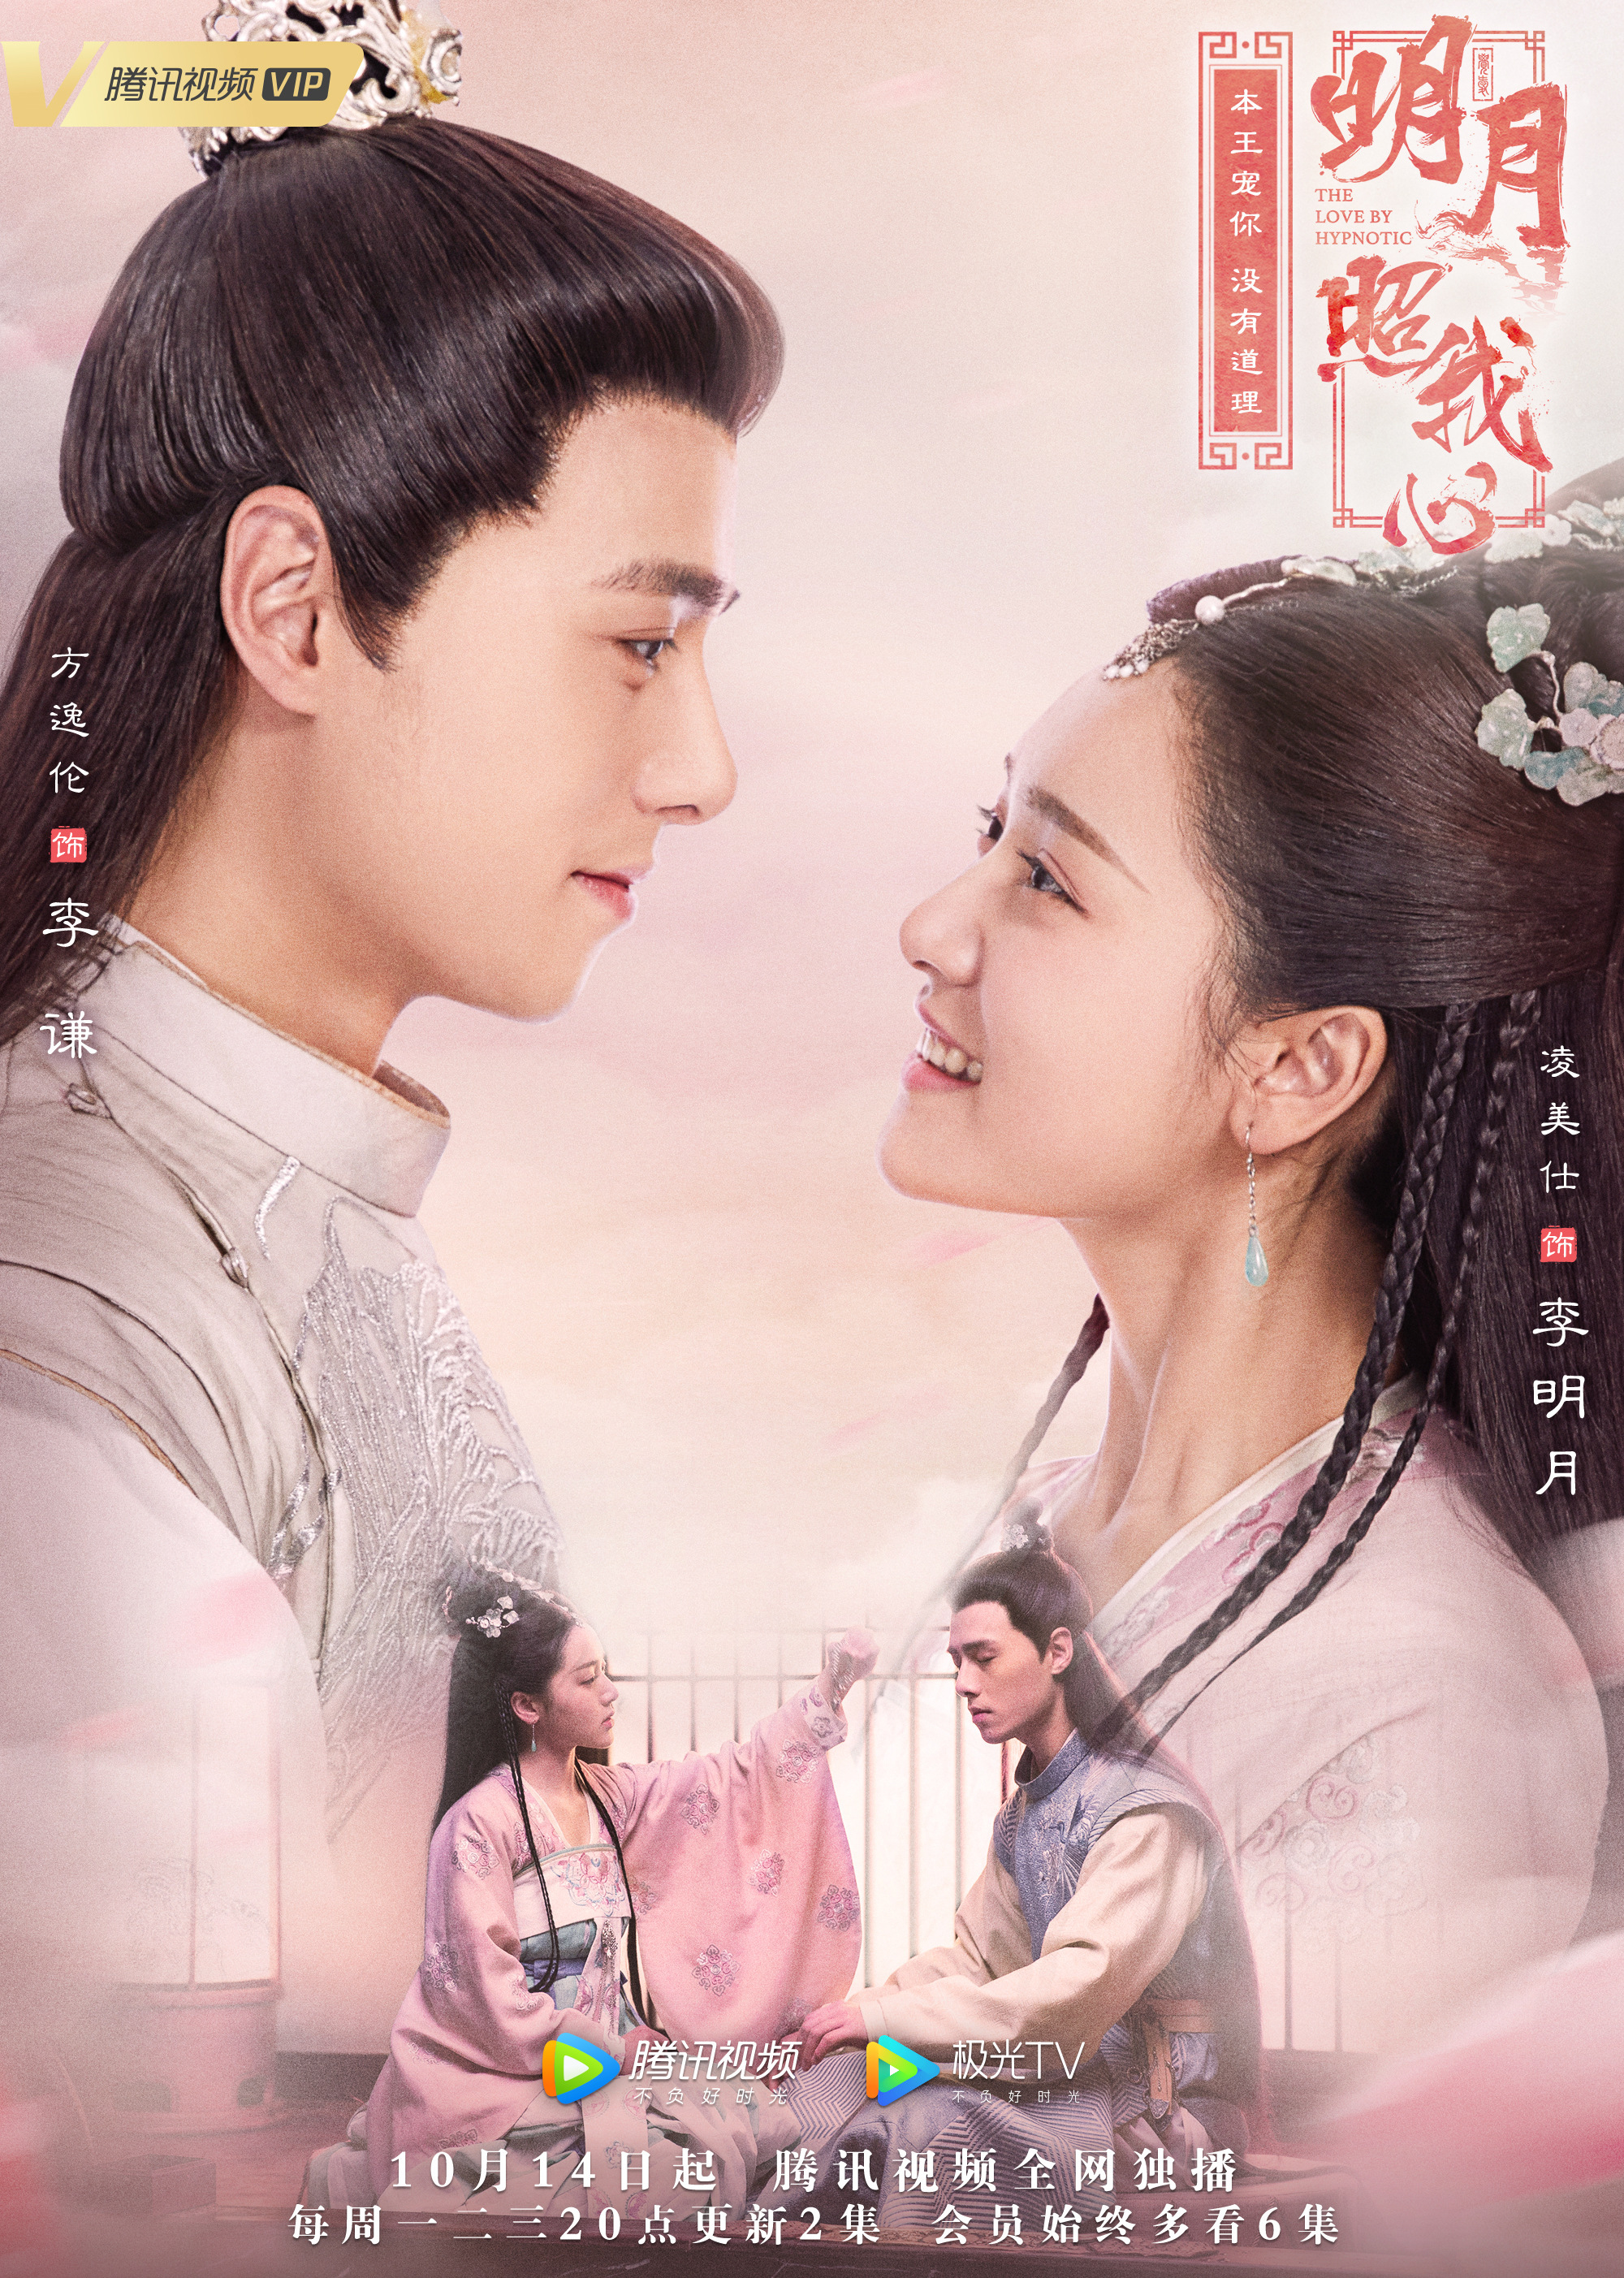 The Love by Hypnotic (Season 1) Chinese Series {Hindi ORG Dubbed} 720p HDRiP [280MB]